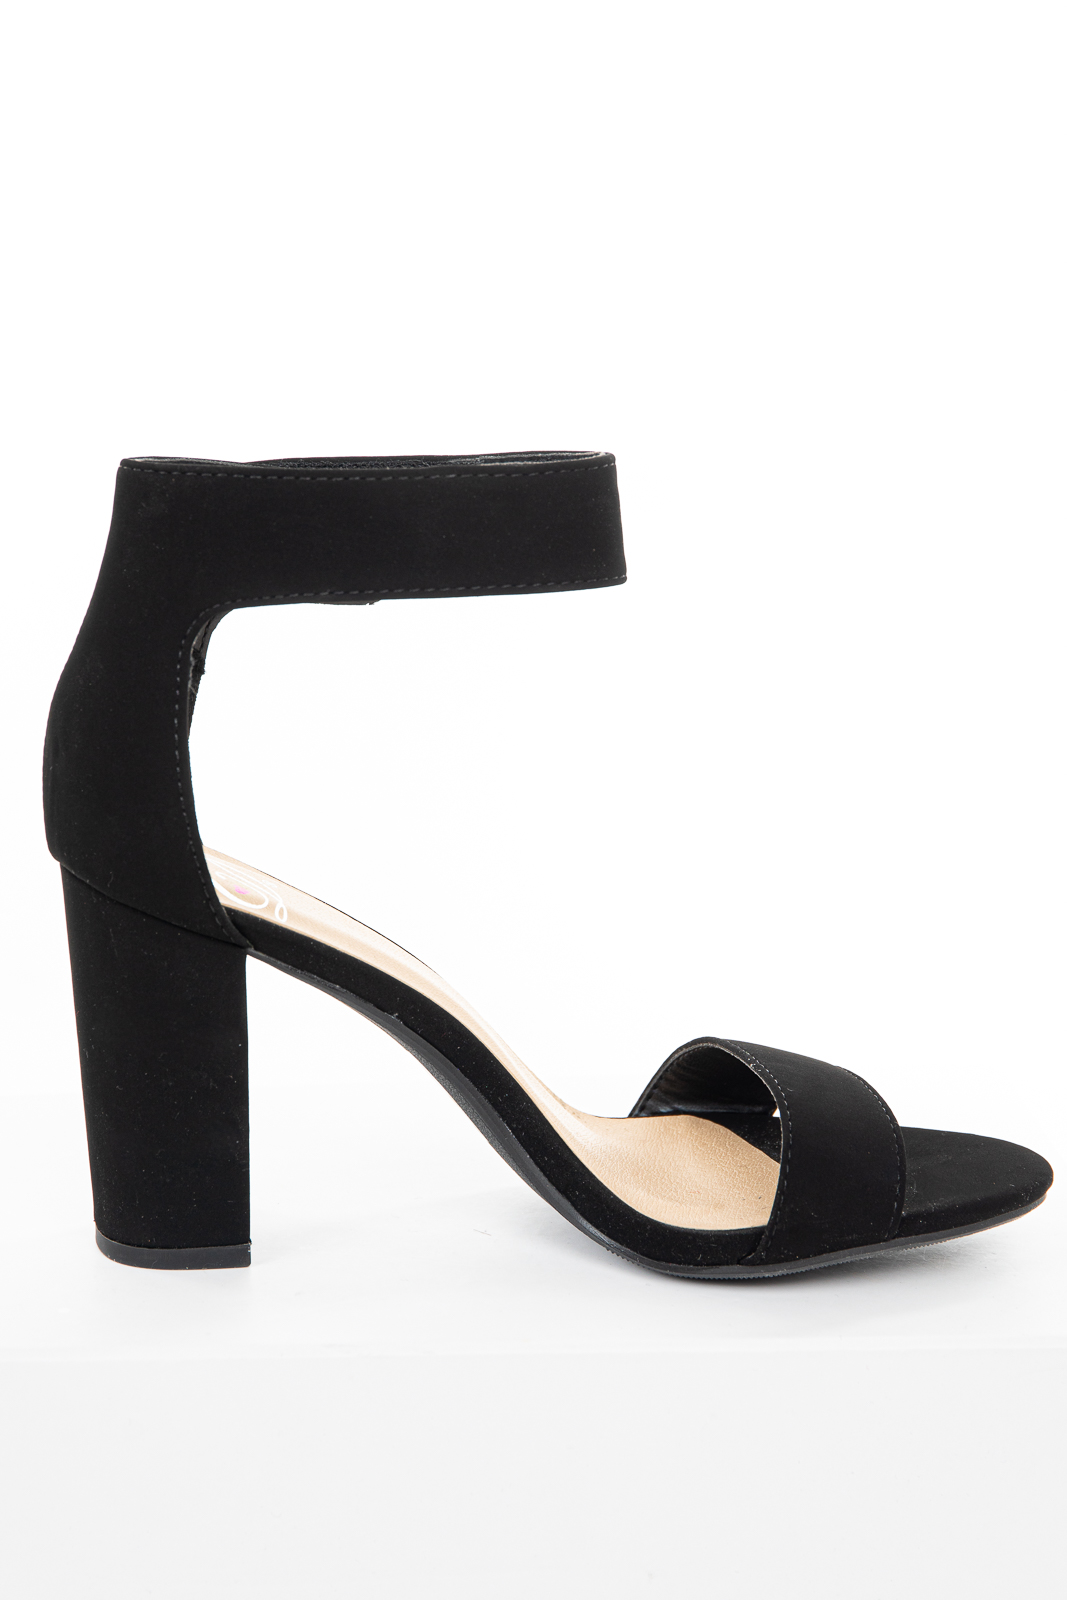 Black Nubuck Chunky High Heel Velcro Ankle Strap Sandals